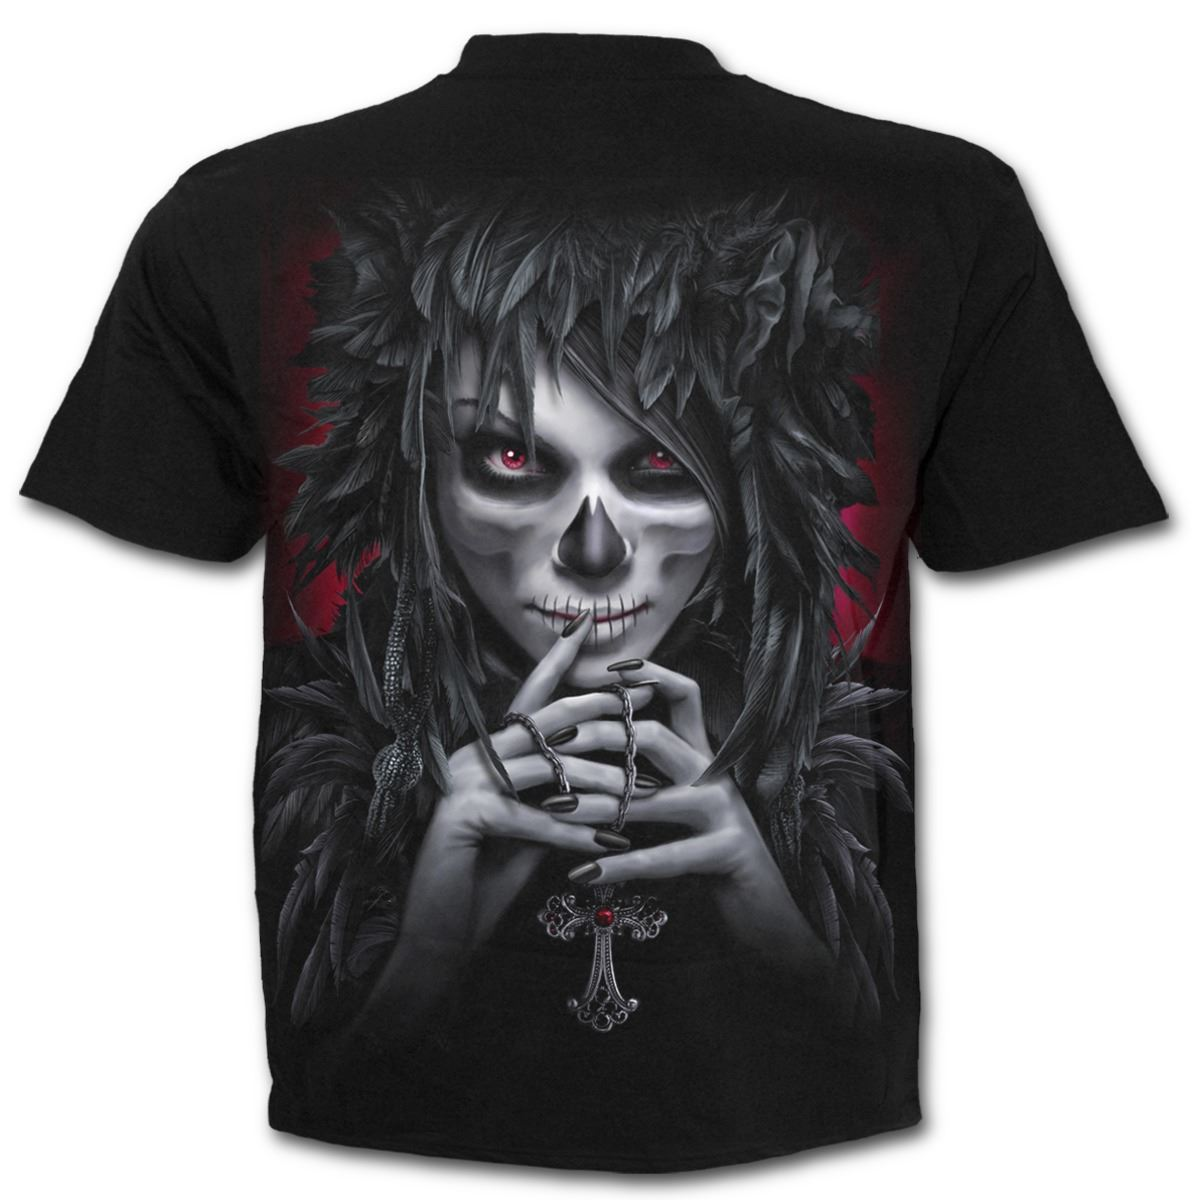 Spiral-Direct-Day-Of-The-Goth-Skeleton-Zombie-Black-Short-Sleeved-T-Shirt thumbnail 6